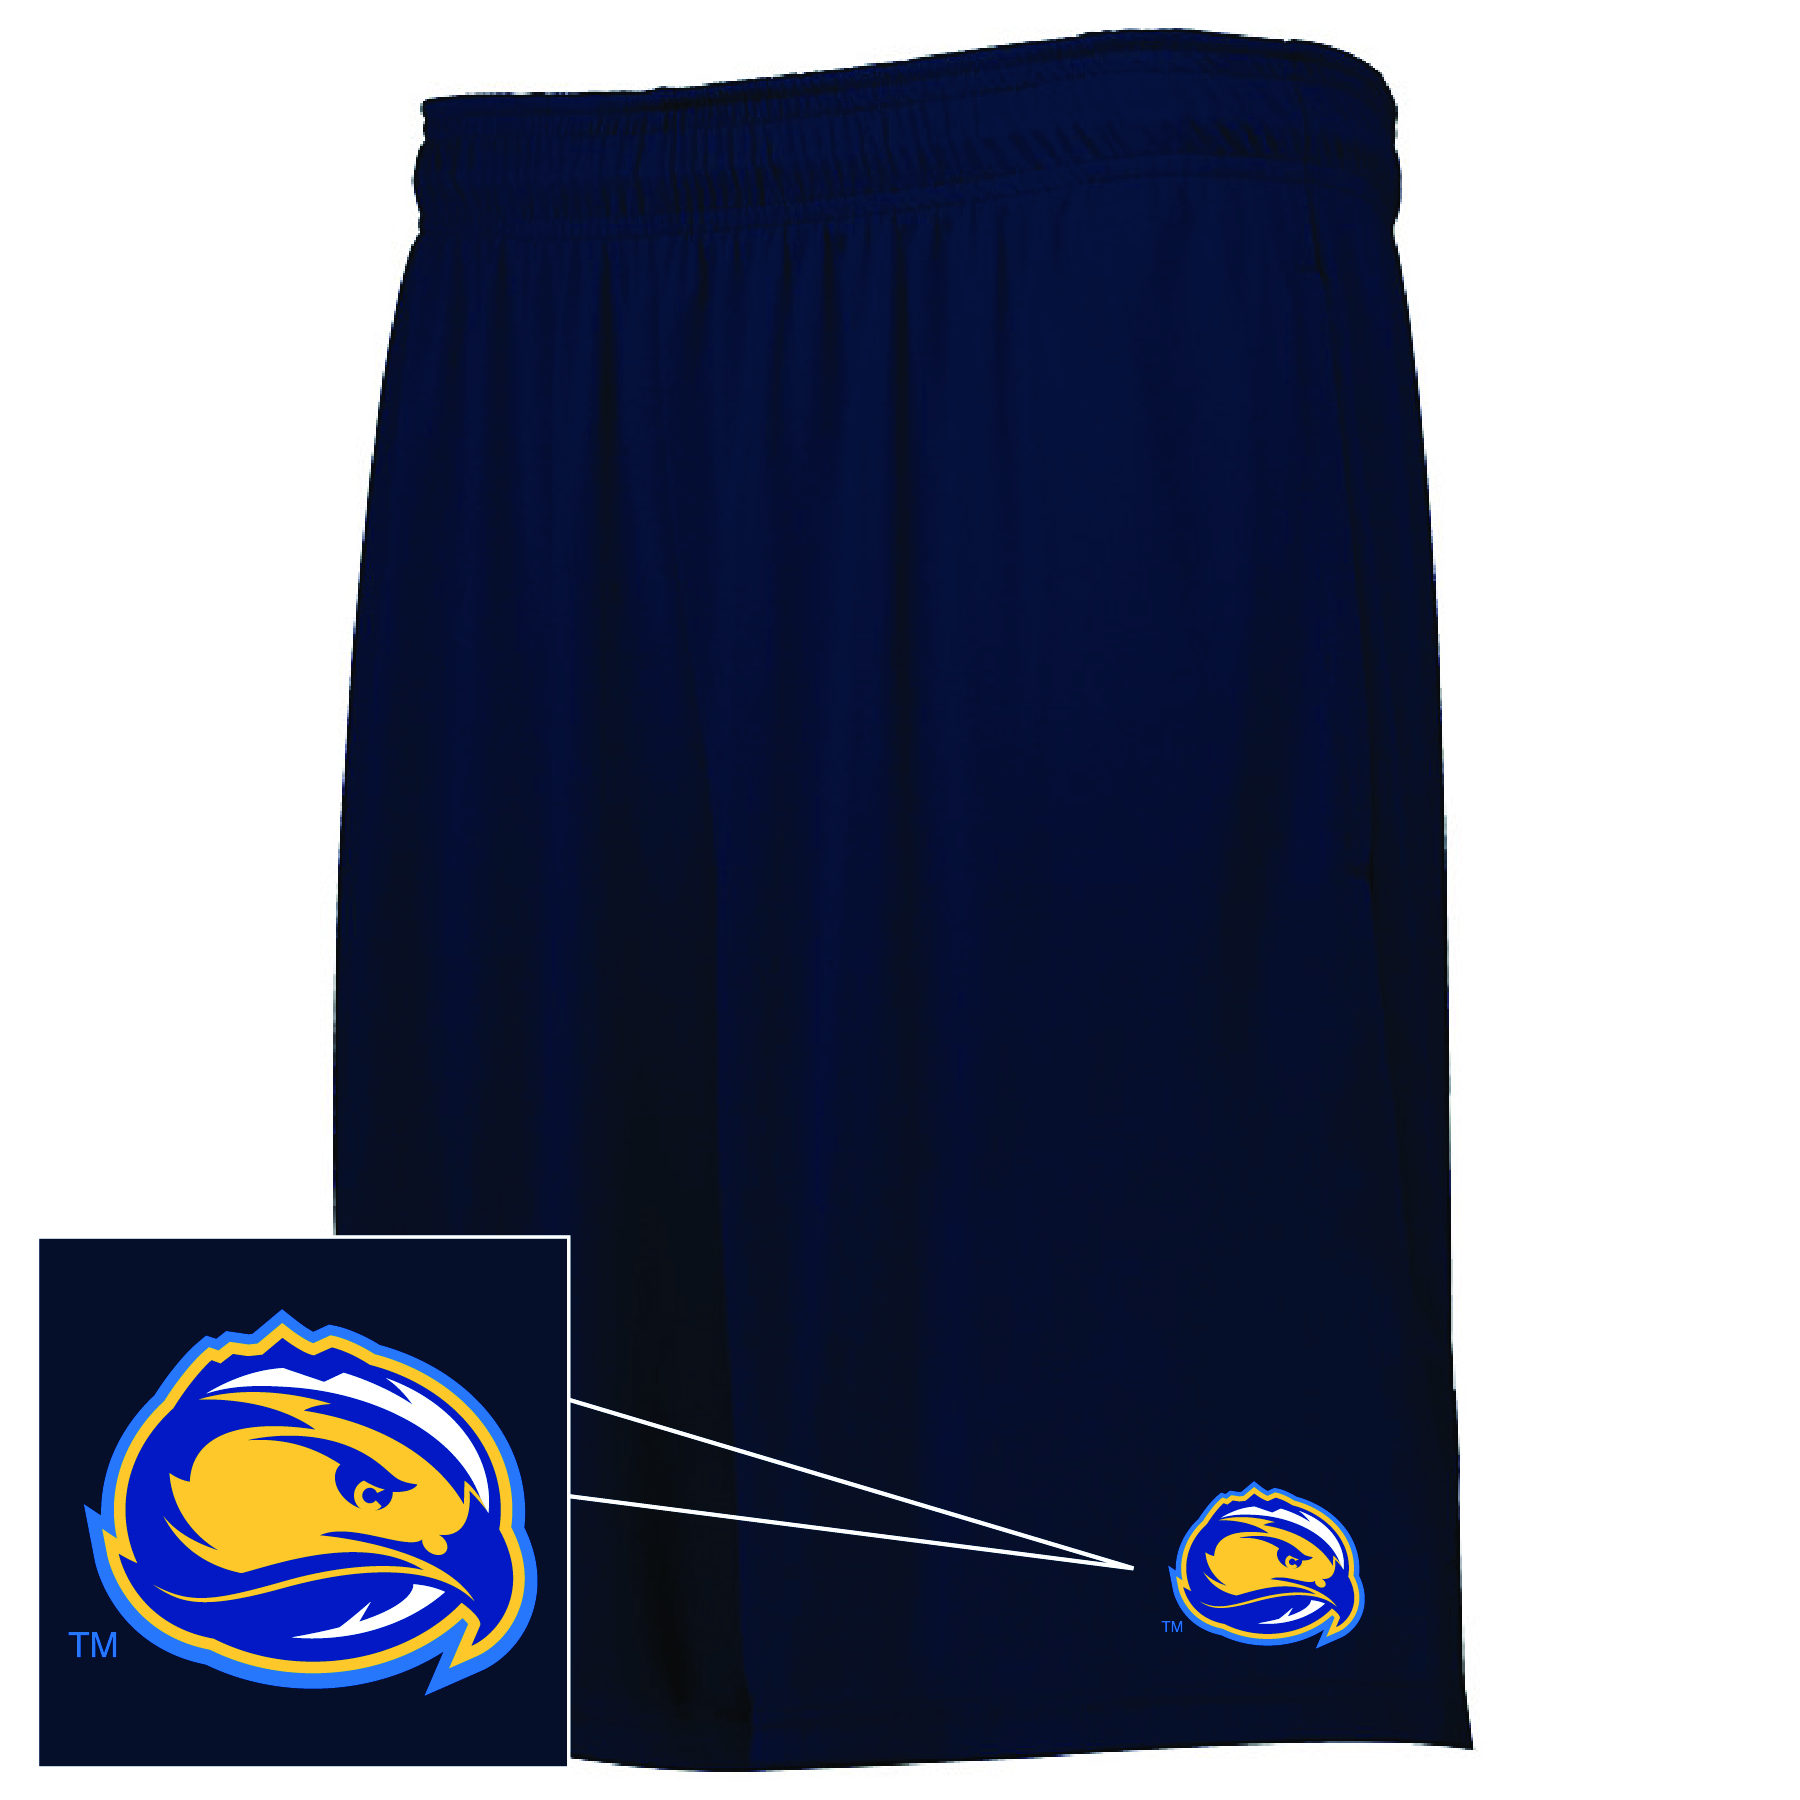 Skyhawk Basketball Shorts